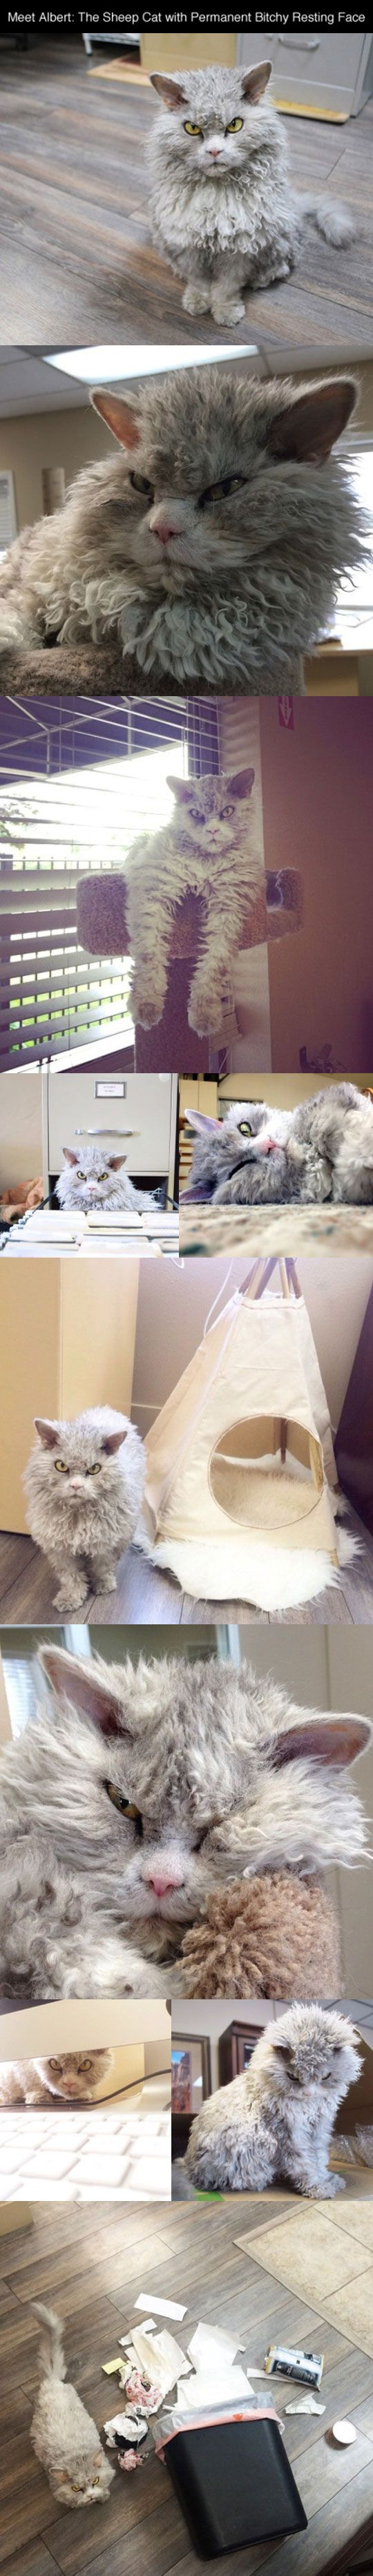 funny evil looking cat sheep - Imgur